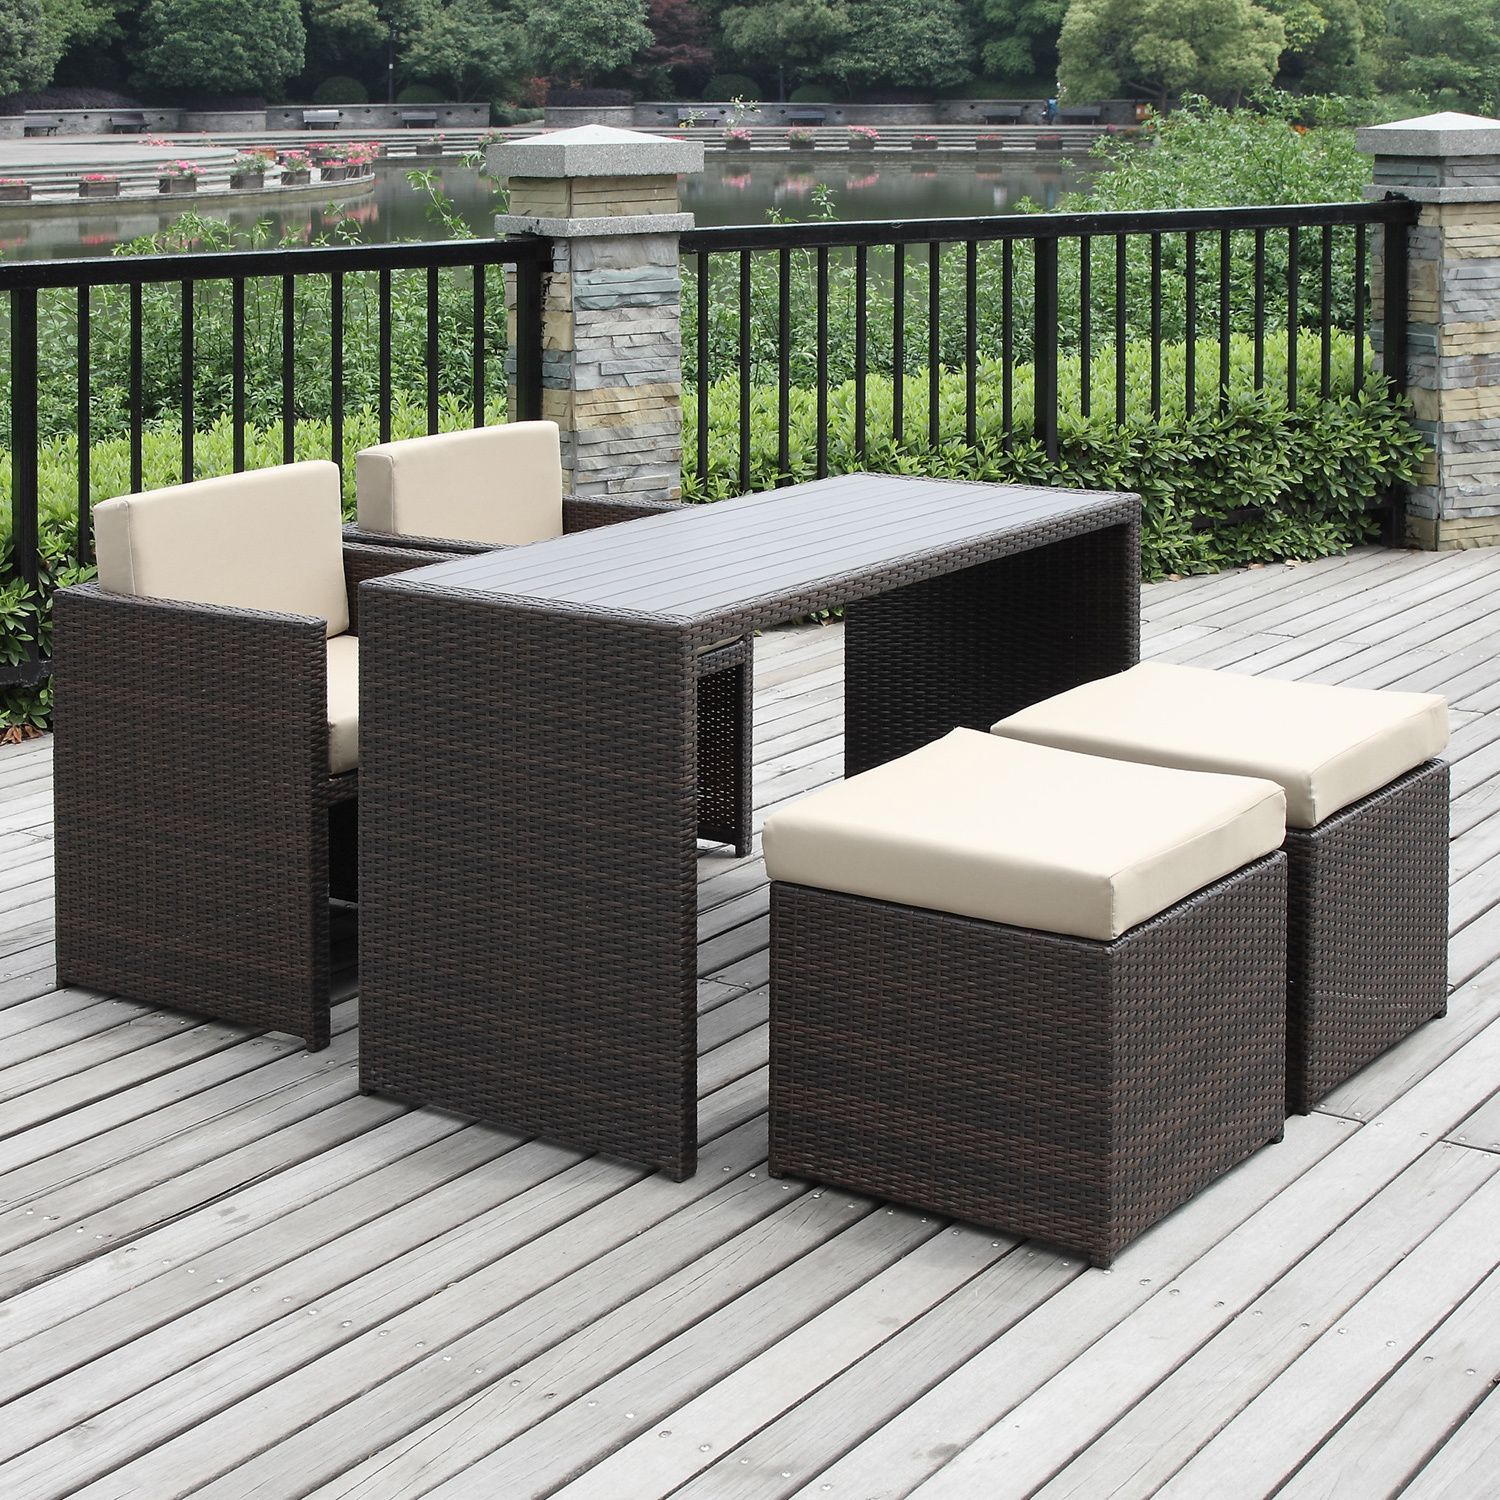 Create livable outdoor space with this stylish resin wicker table